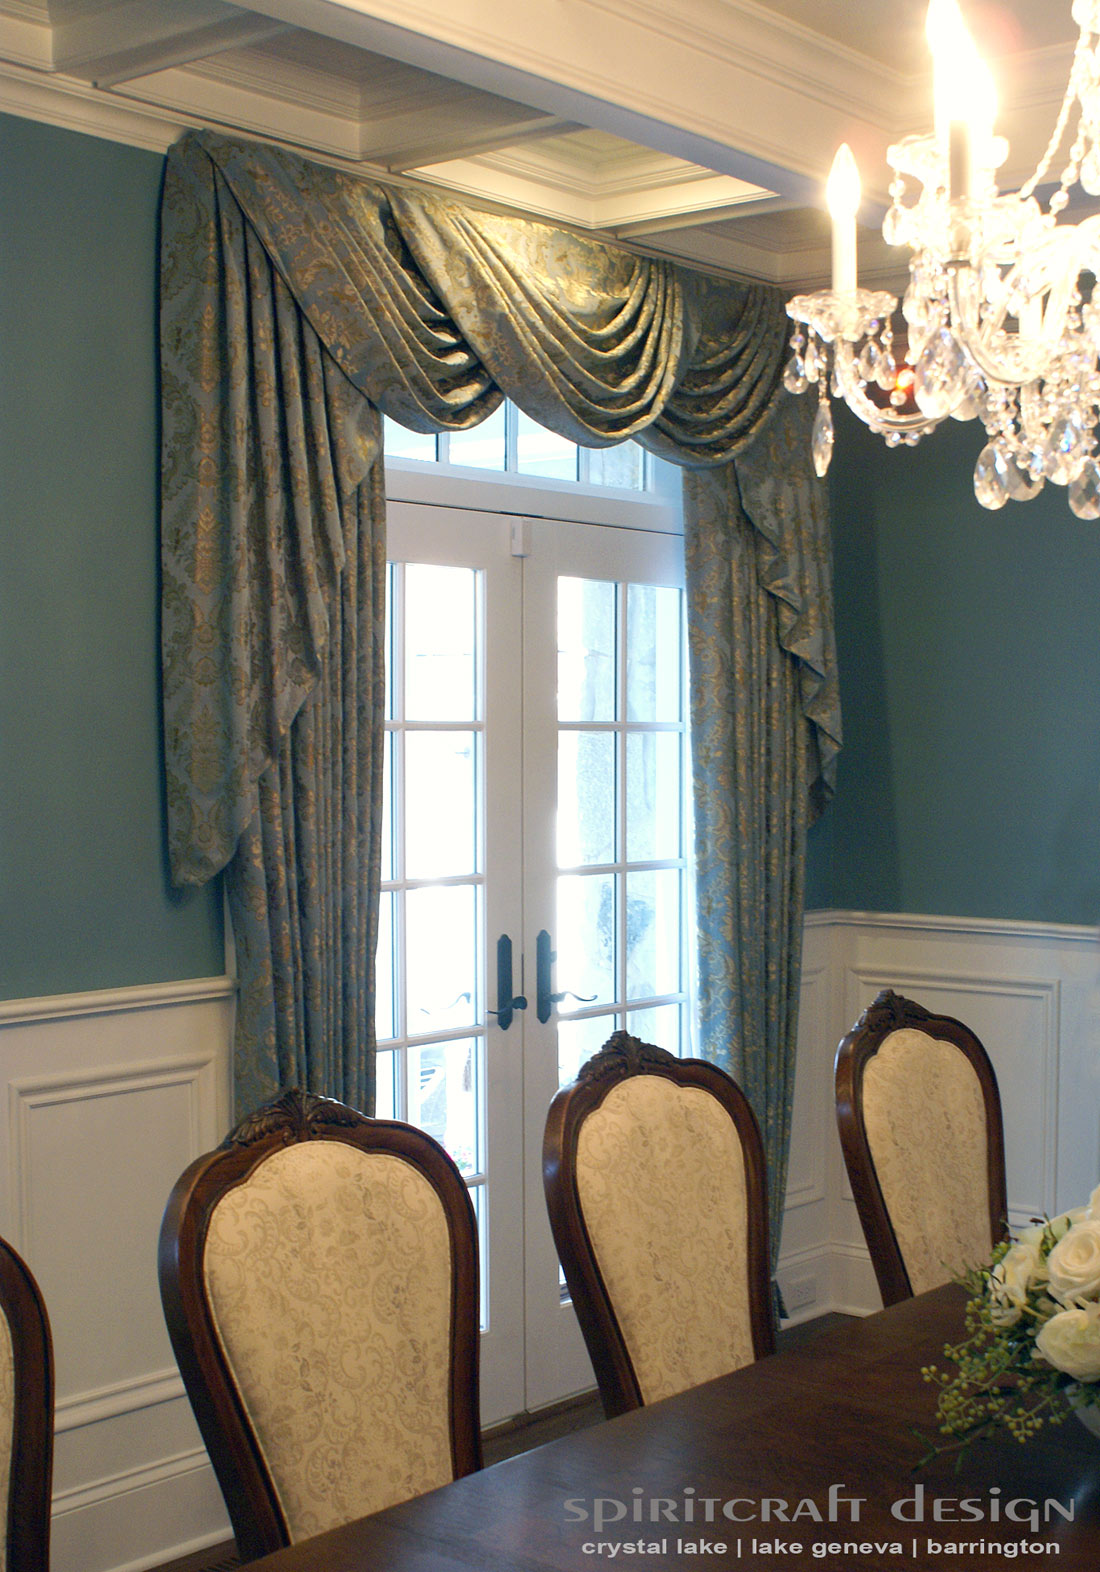 Lake Forest drapery panels with swag and dining chair upholstery by Spiritcraft Interior Design of Crystal Lake Illinois